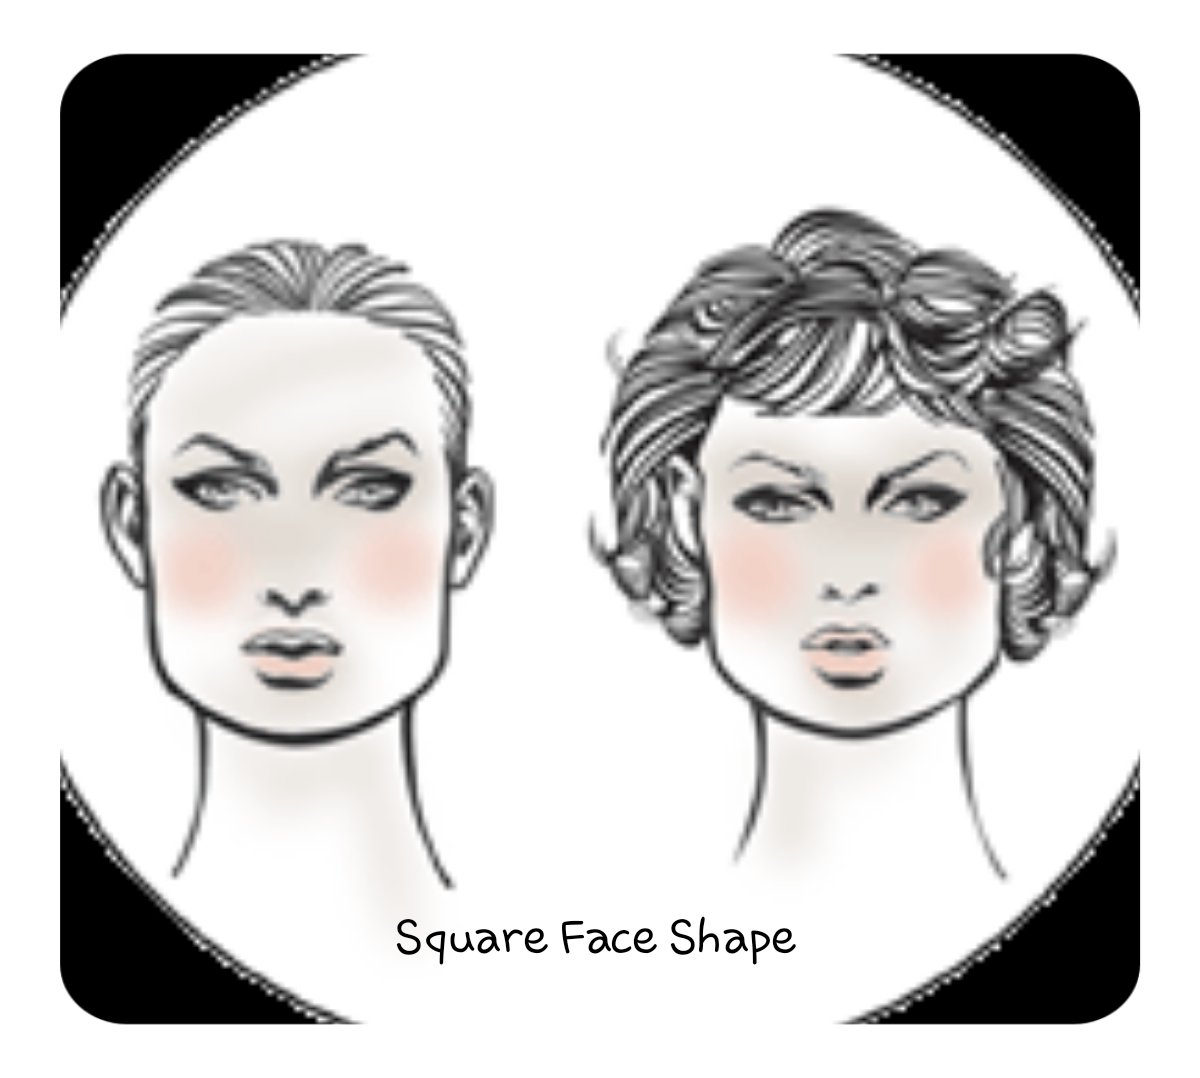 Square Face shape for hair extensions